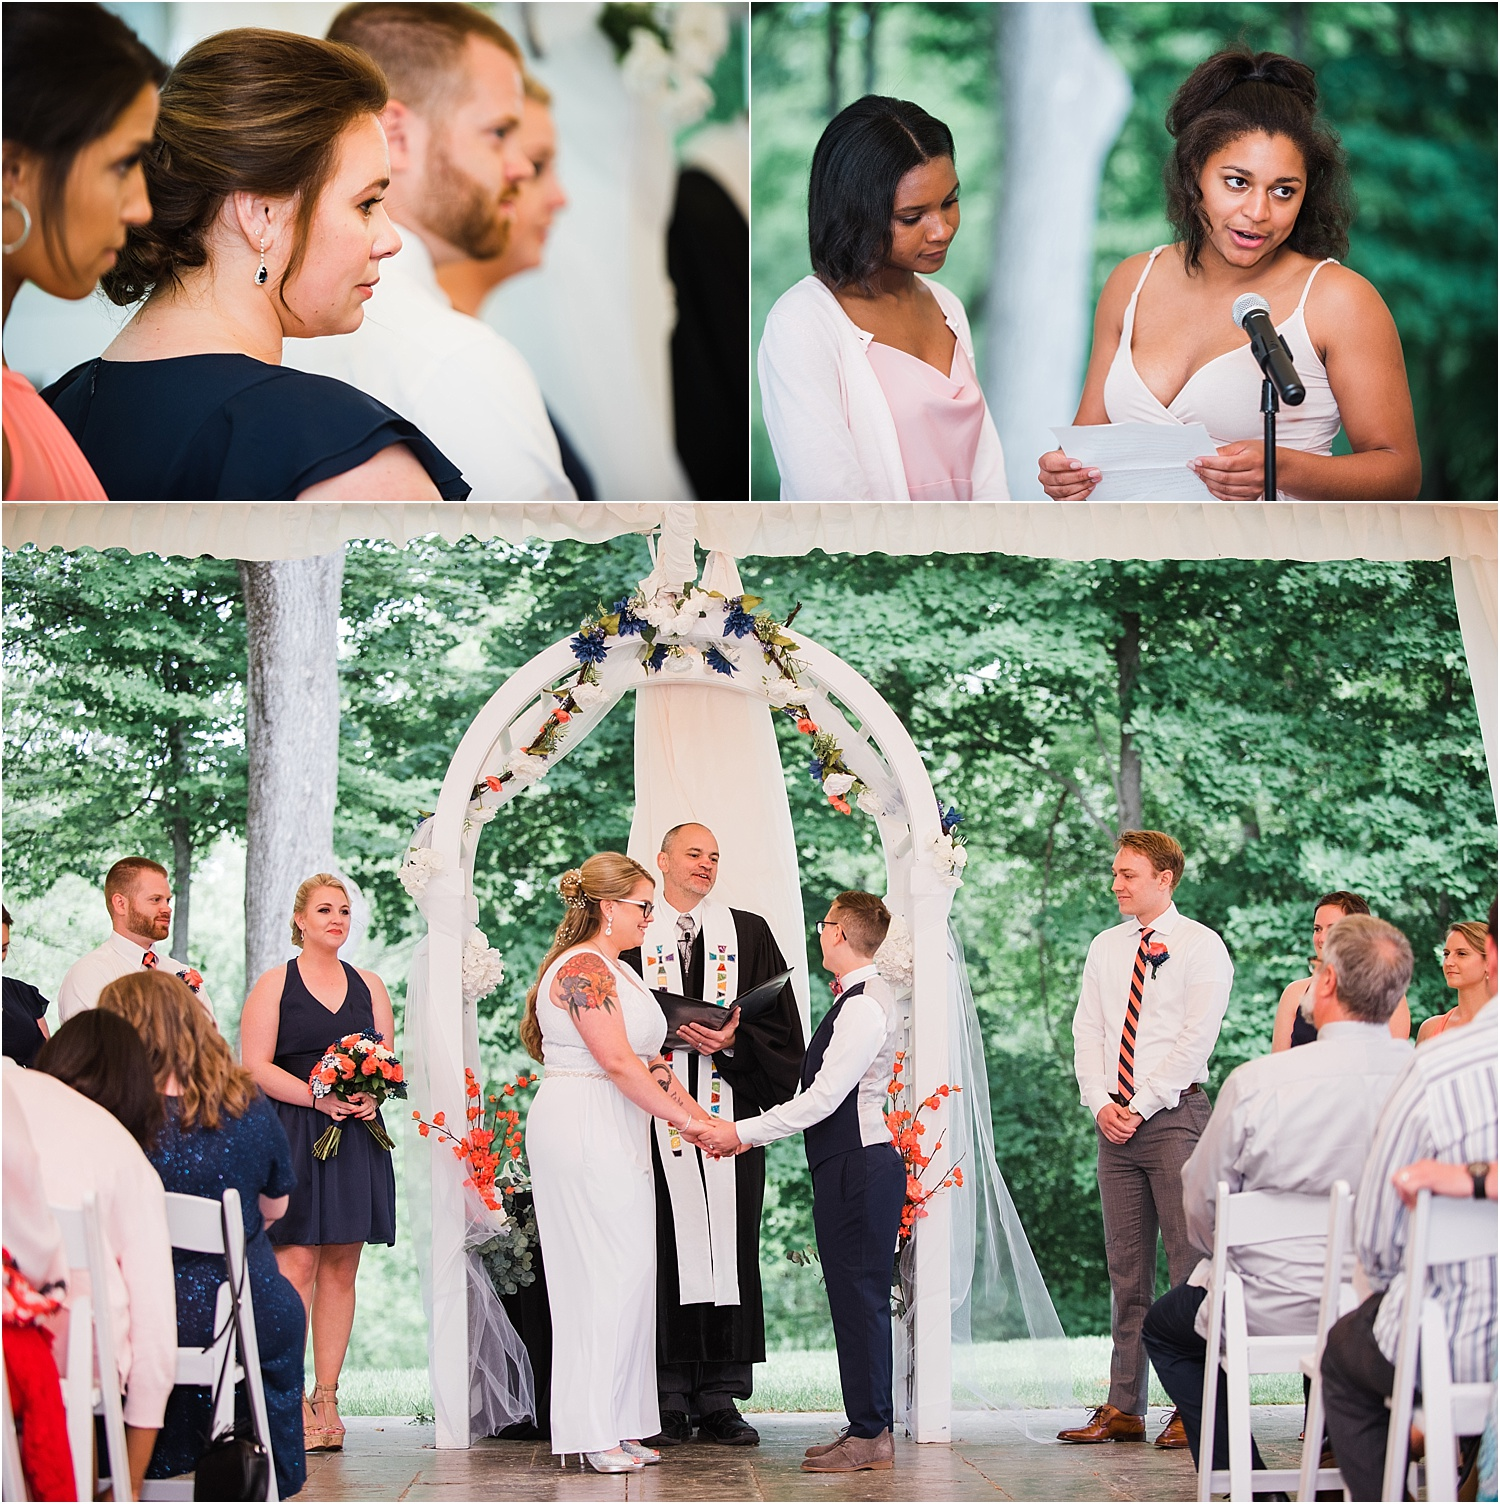 The_Riverview_Simsbury_Connecticut_Wedding_LGBT_Weddings_028.jpg